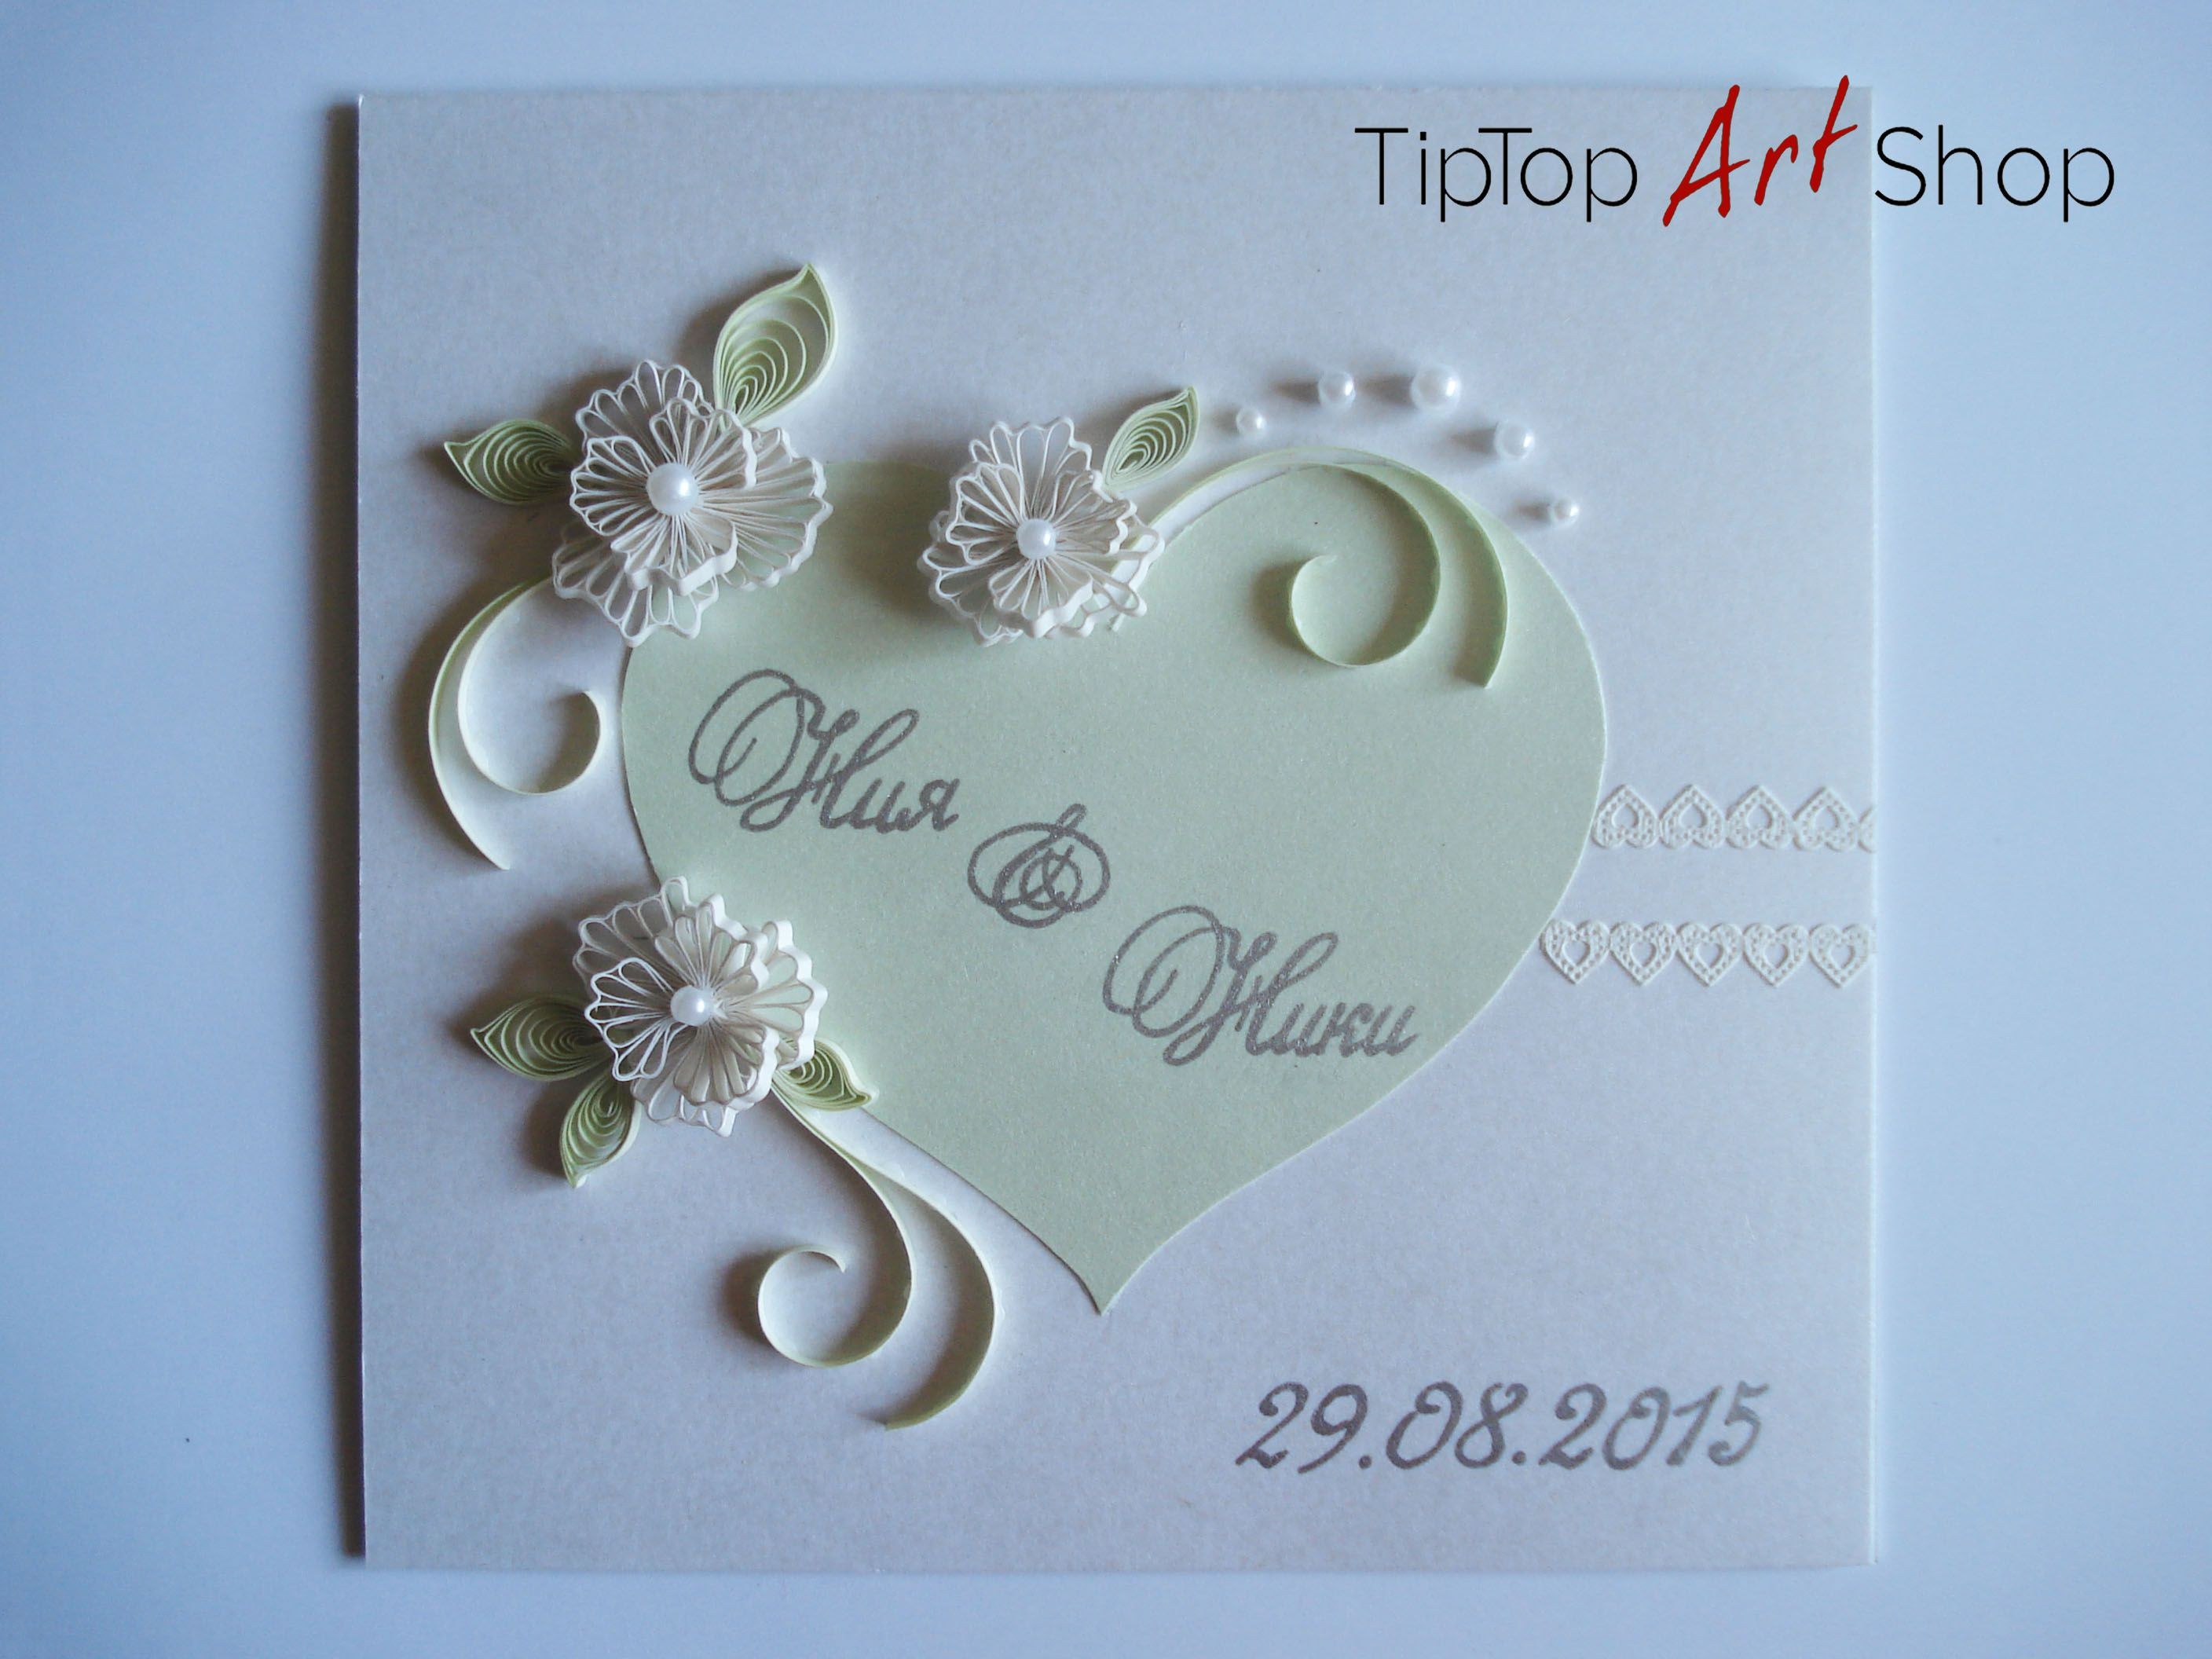 Quilling wedding card with handmade paper flowers in pale green and quilling wedding card with handmade paper flowers in pale green and white by tiptopartshop quilling cards mightylinksfo